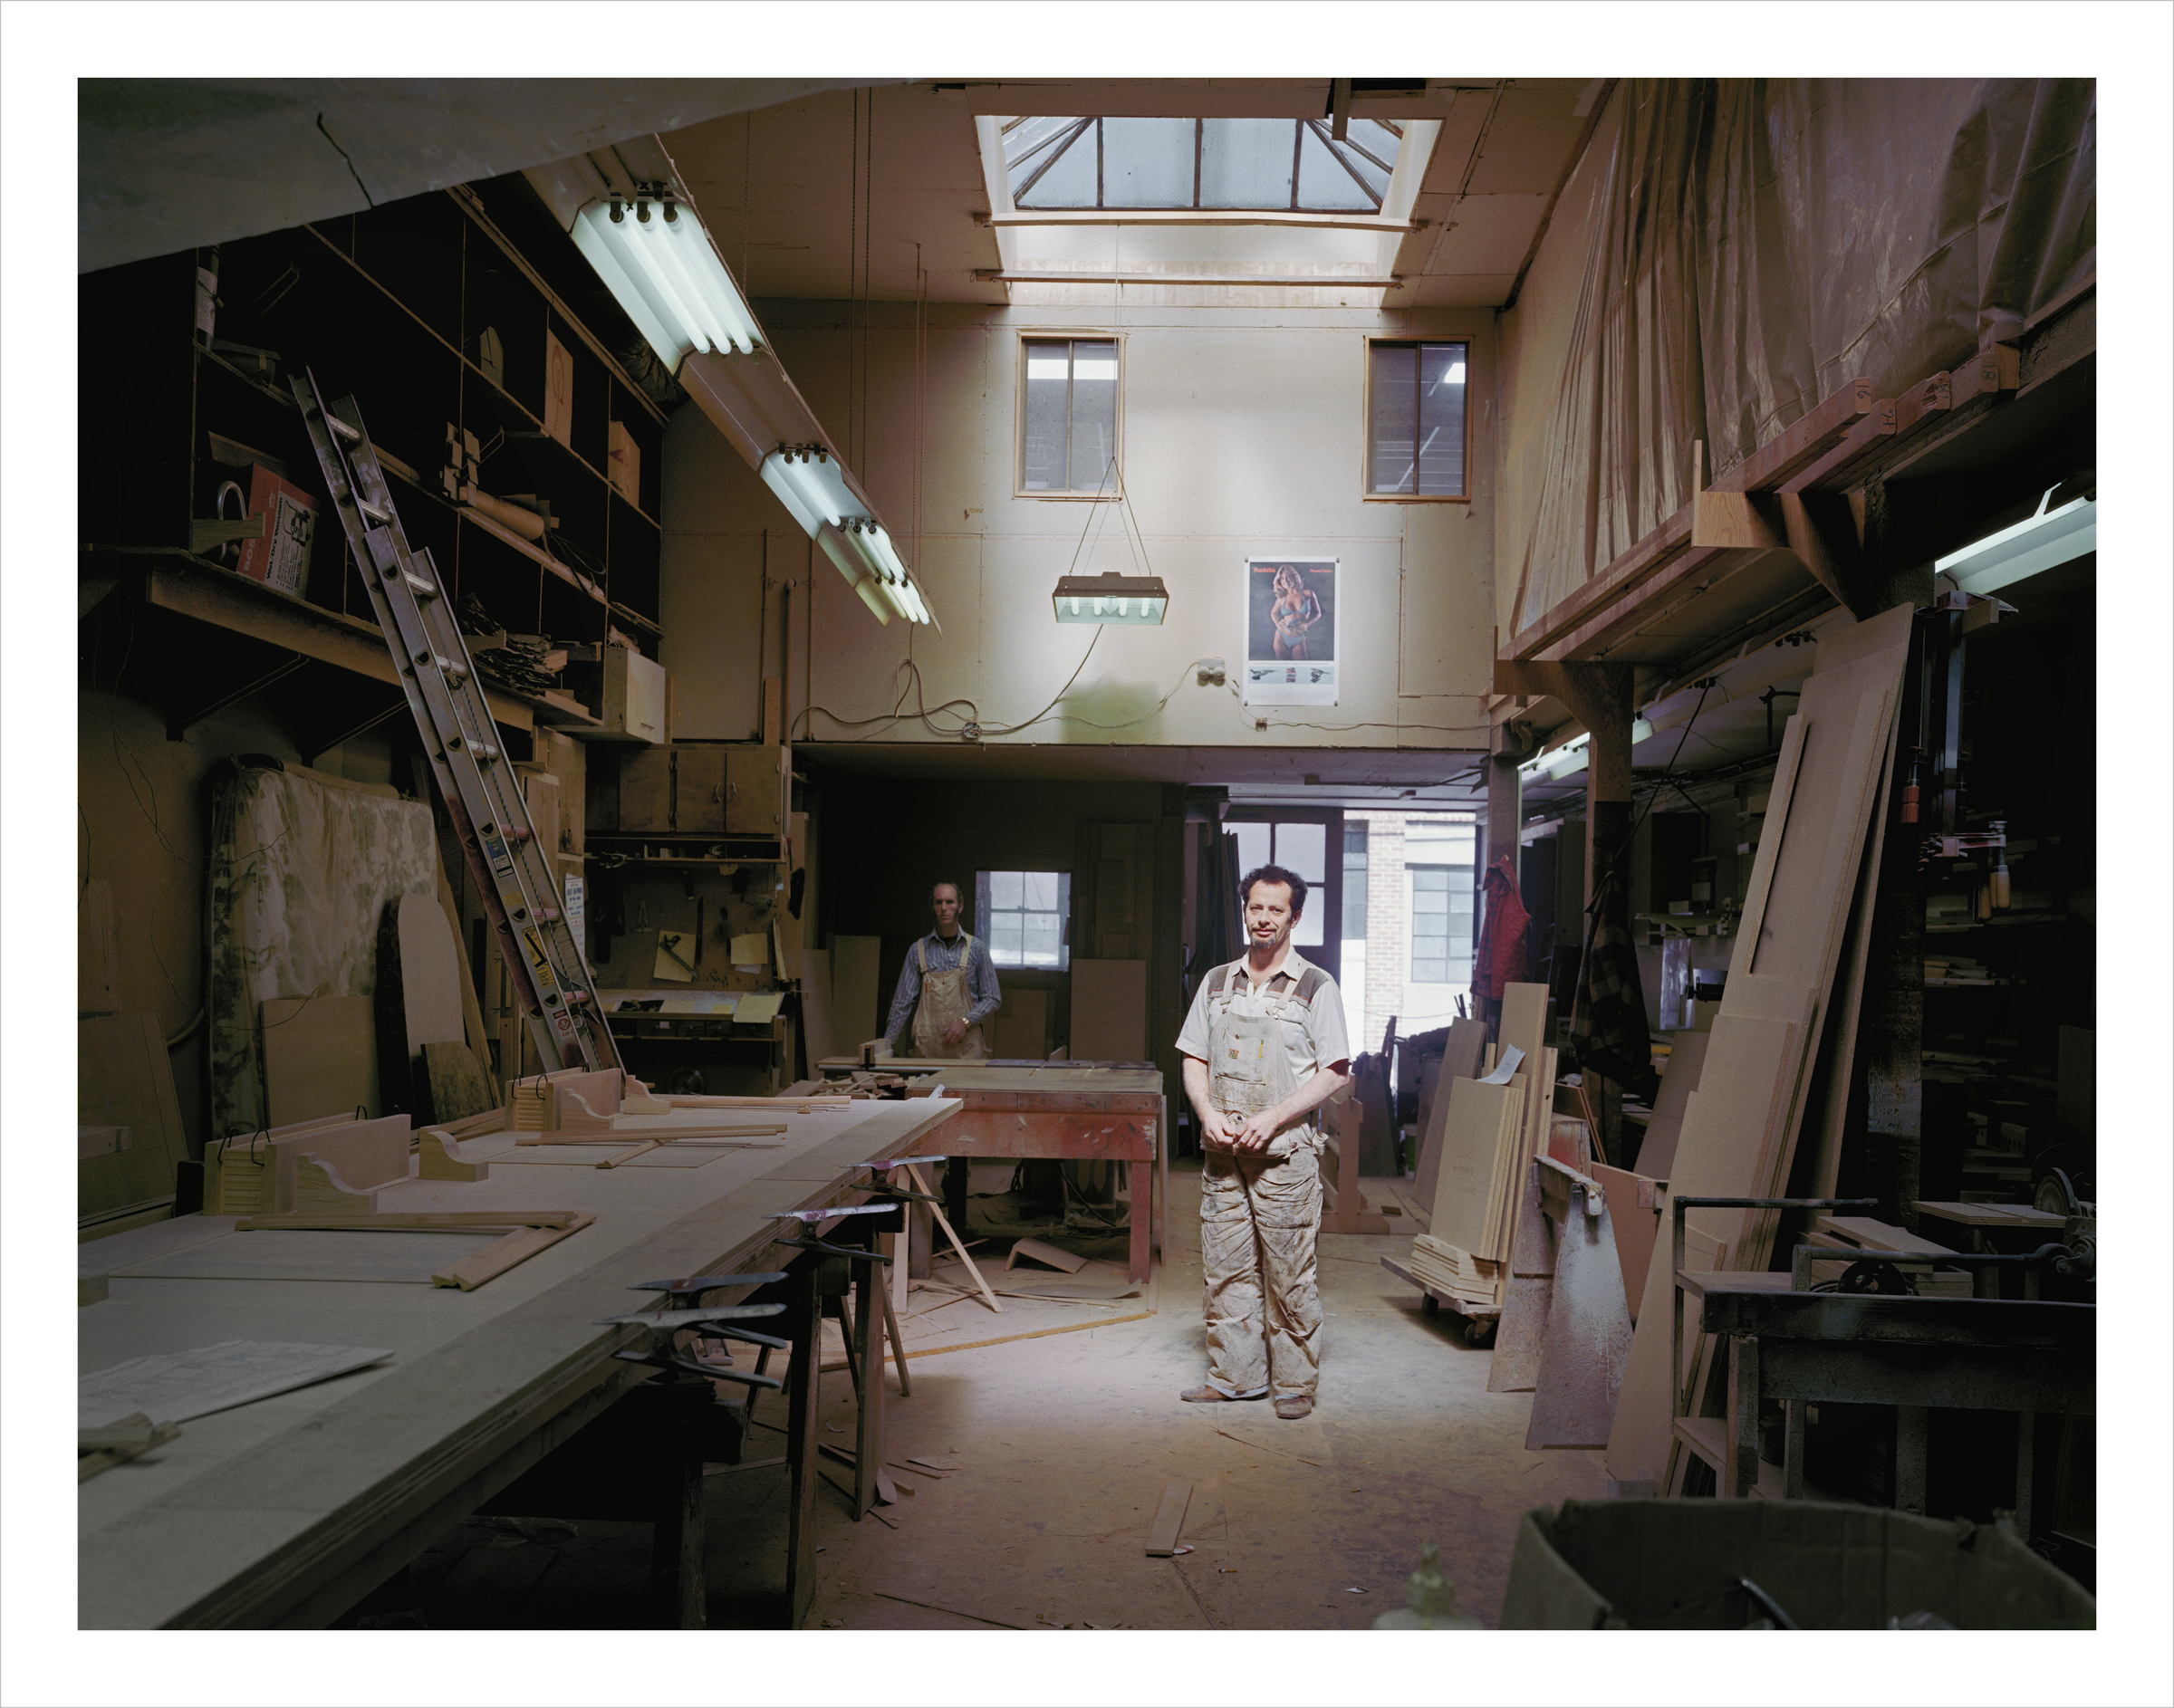 People's Construction, 30 Langton Street, 1980 Archival Pigment Print, 2016 16 x 20 inches, edition of 5 20 x 24 inches, edition of 2 30 x 40 inches, edition of 2